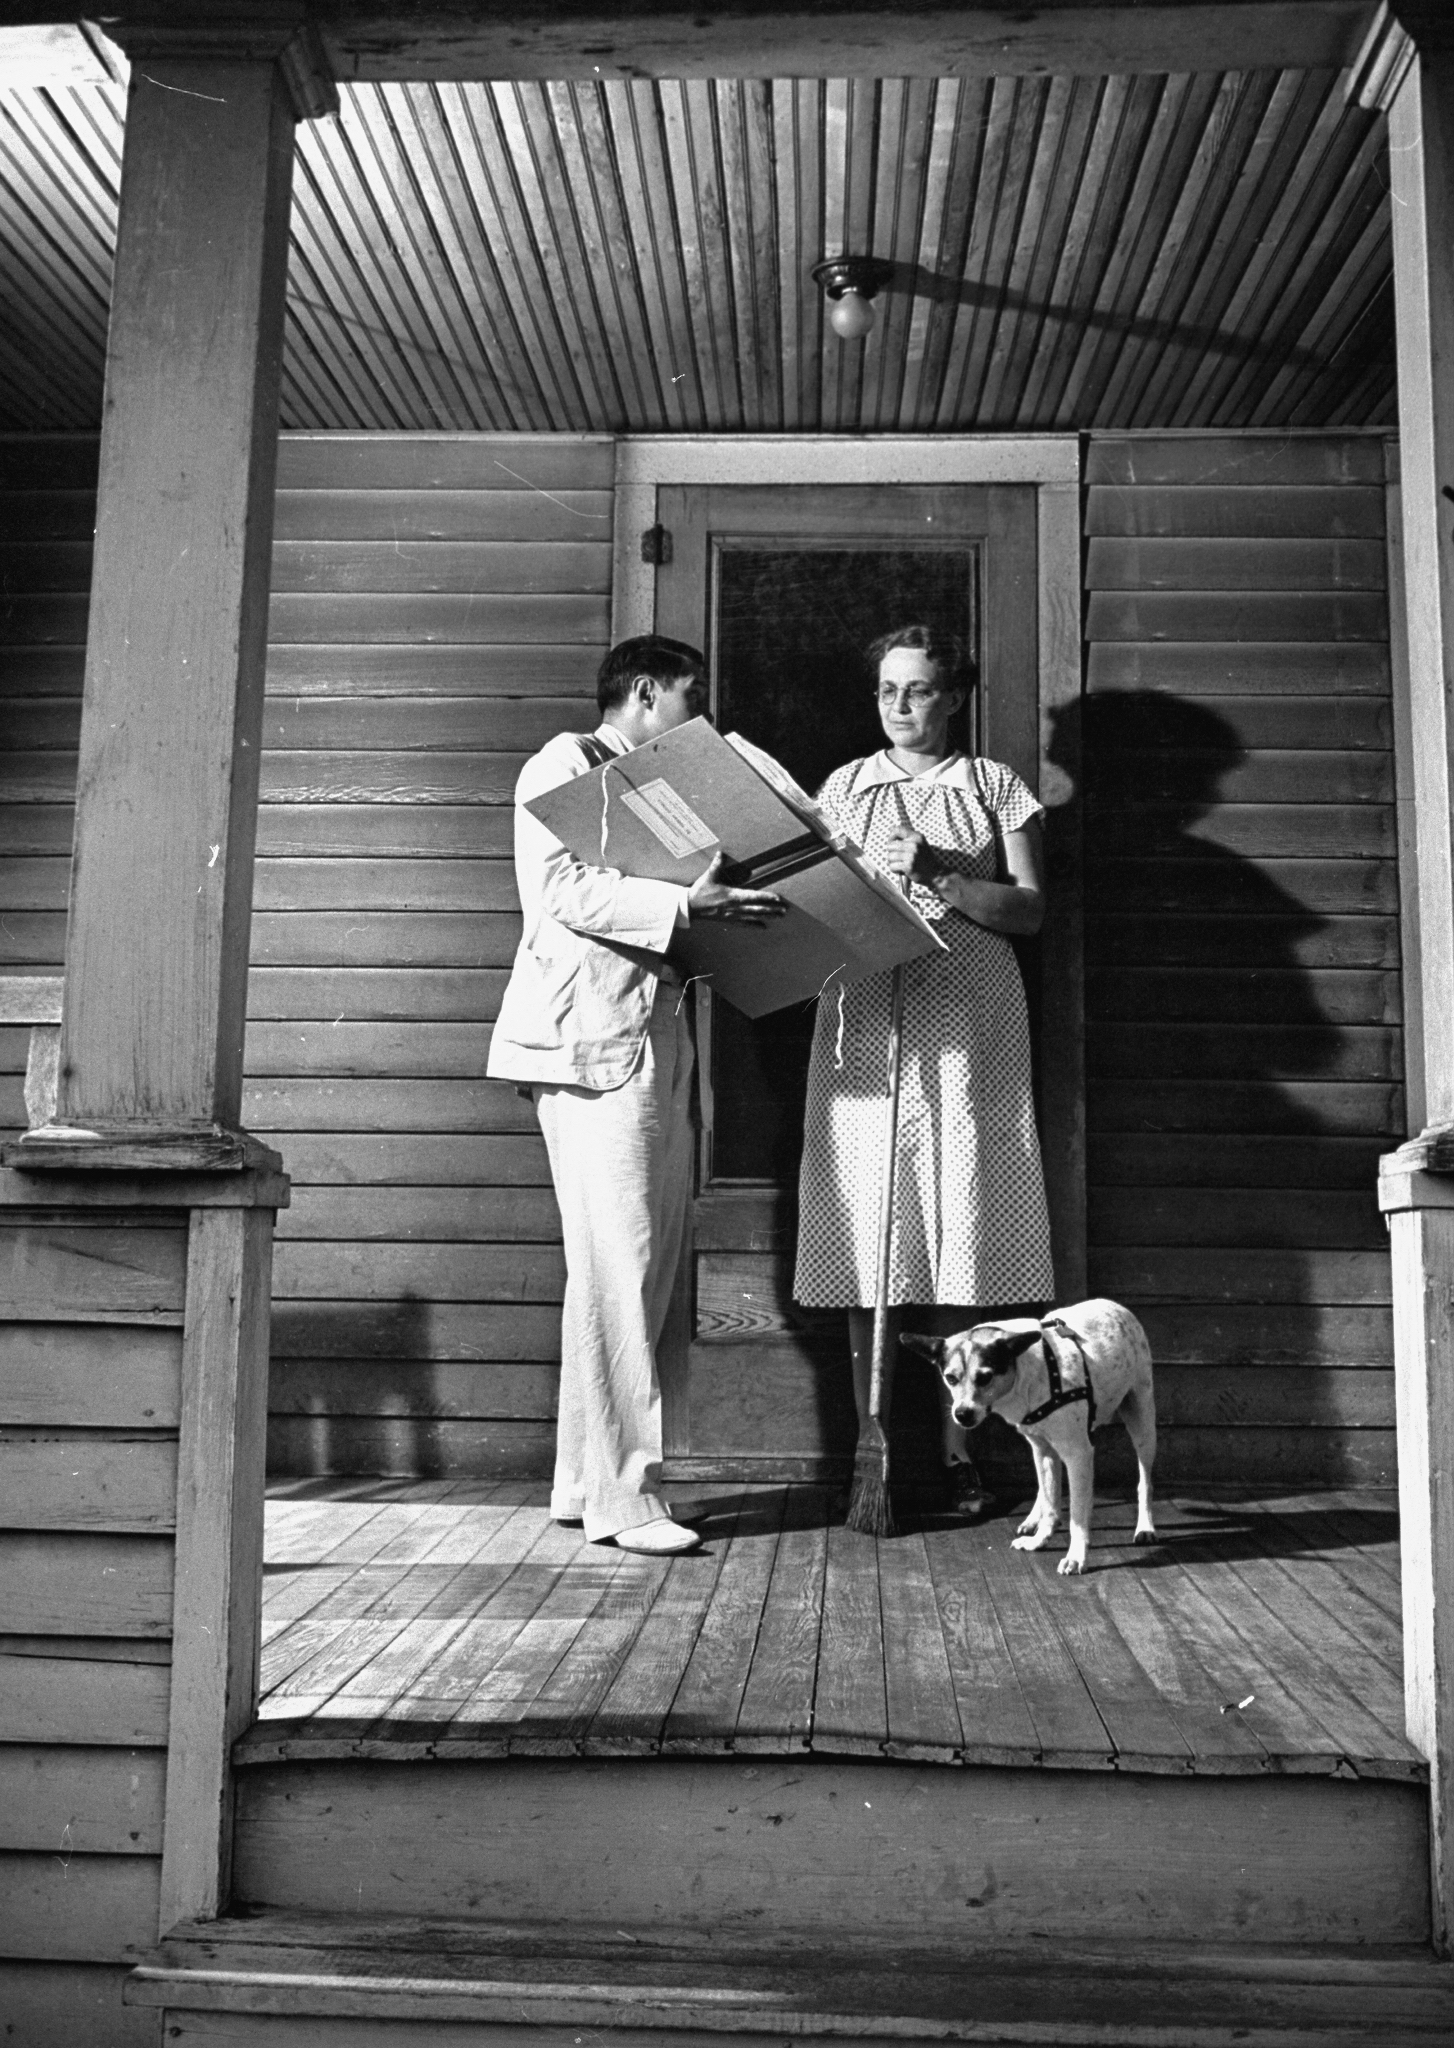 Census taker talking with a housewife on porch of her home, c. 1940.